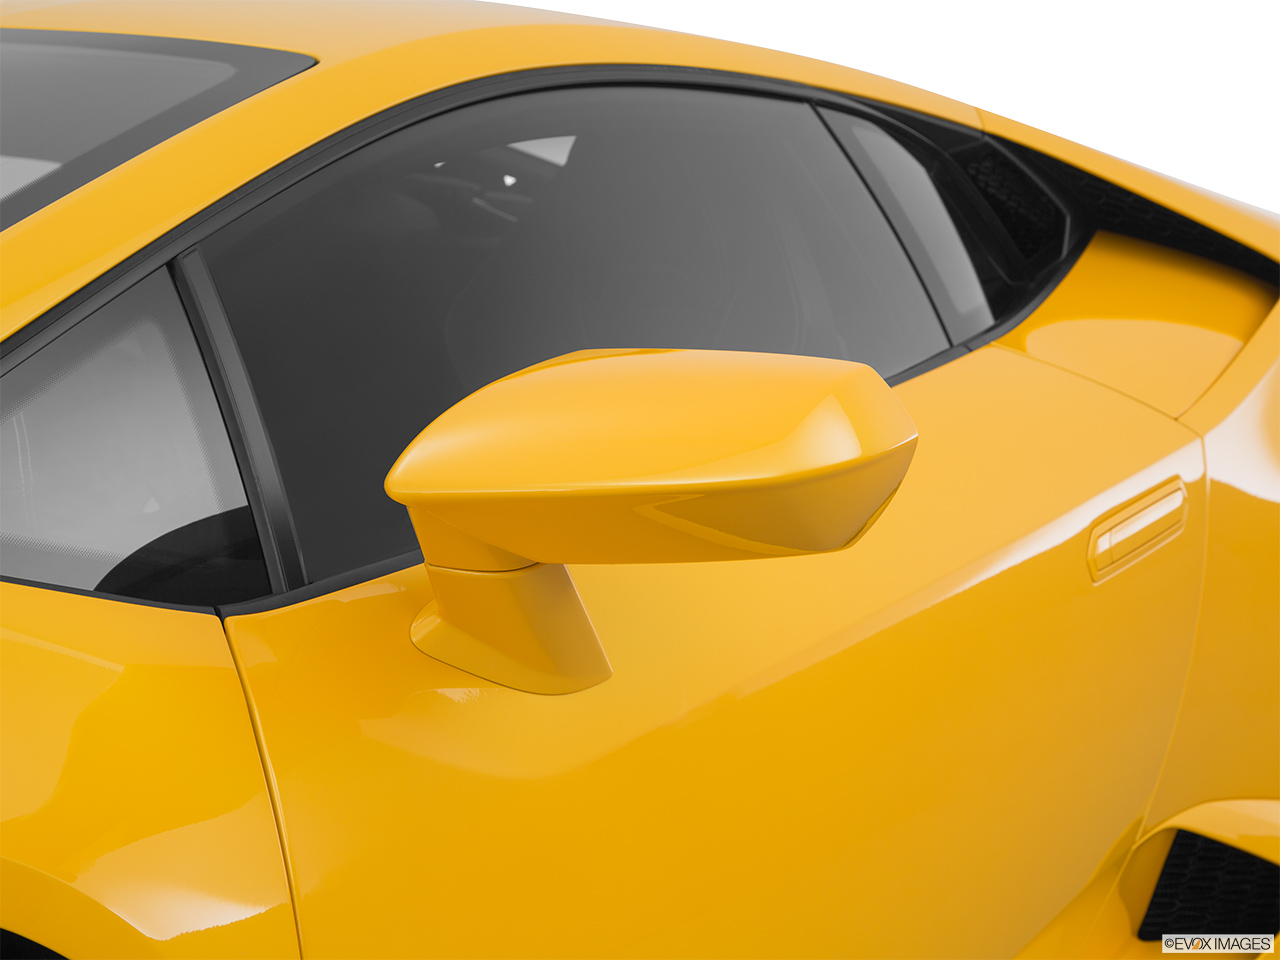 2015 Lamborghini Huracan LP 610-4 Driver's side mirror, 3_4 rear